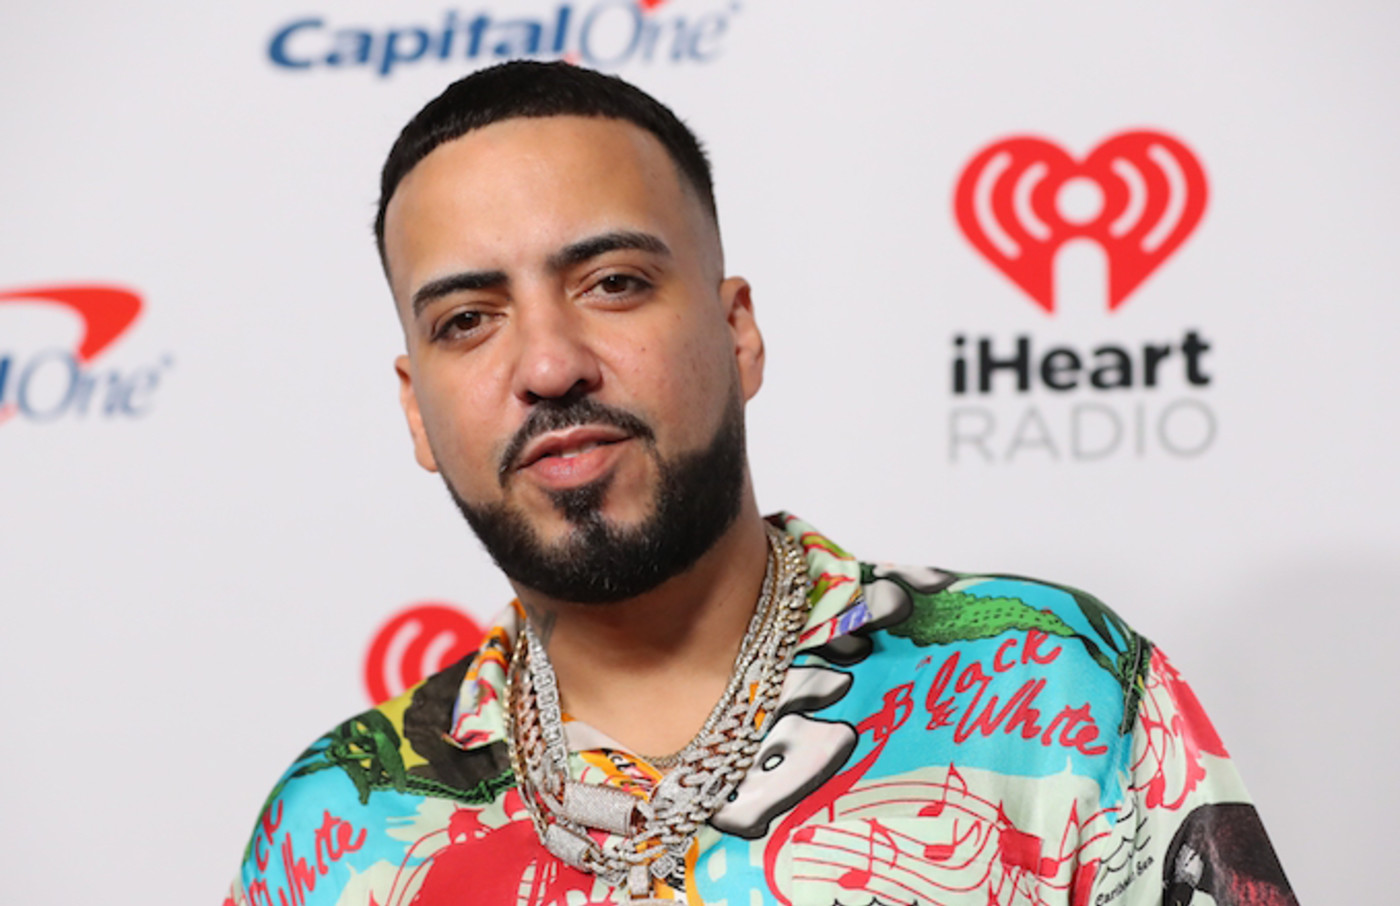 French Montana attends the 2019 iHeartRadio Music Festival.